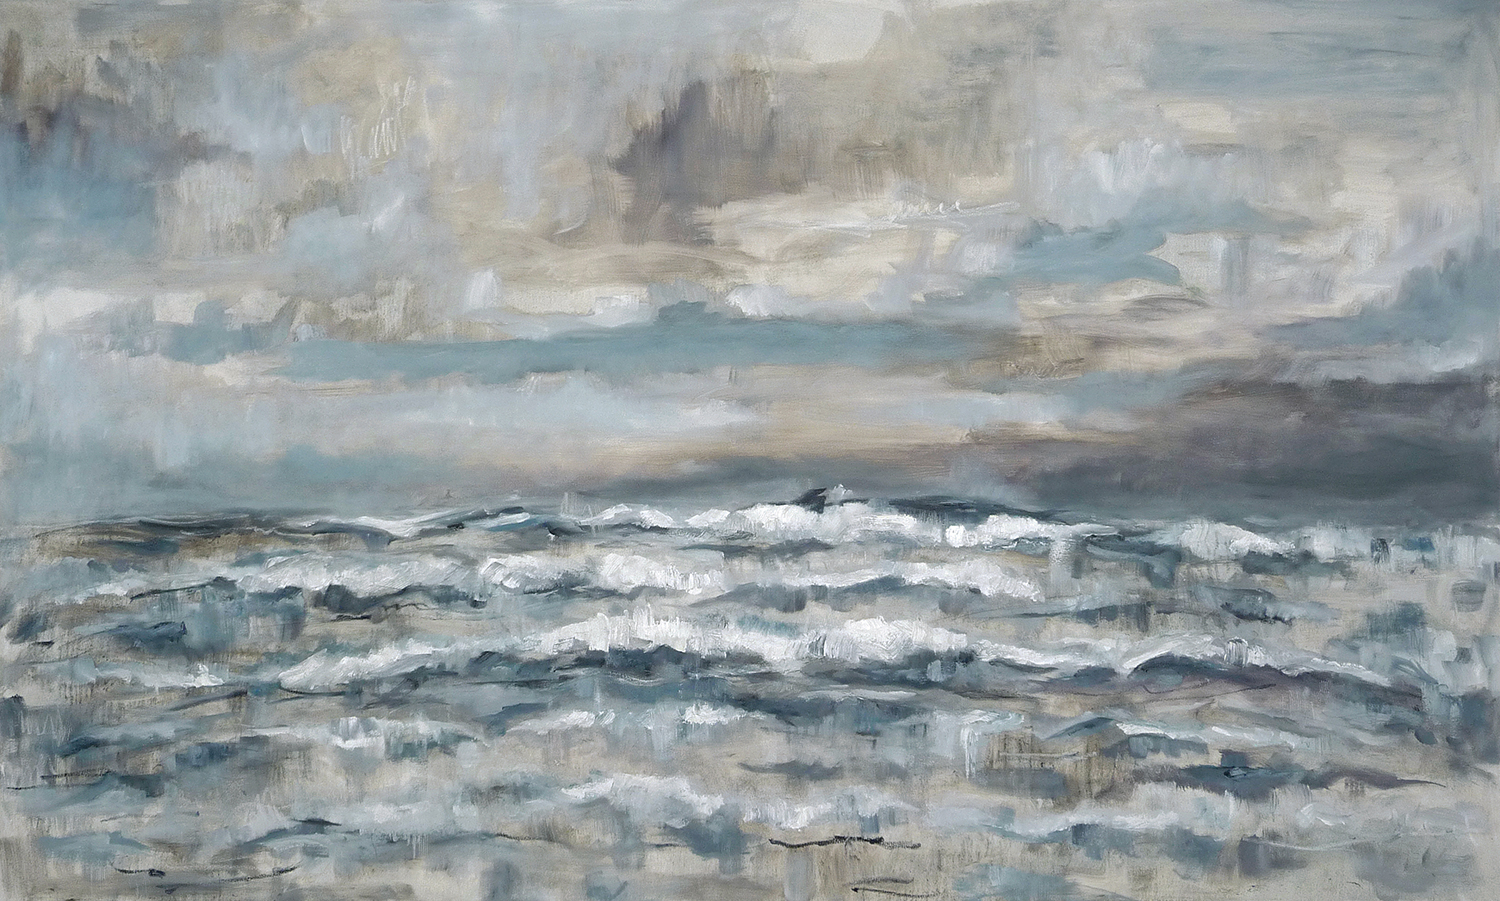 Seascape  oil on canvas. 48x80in 2017